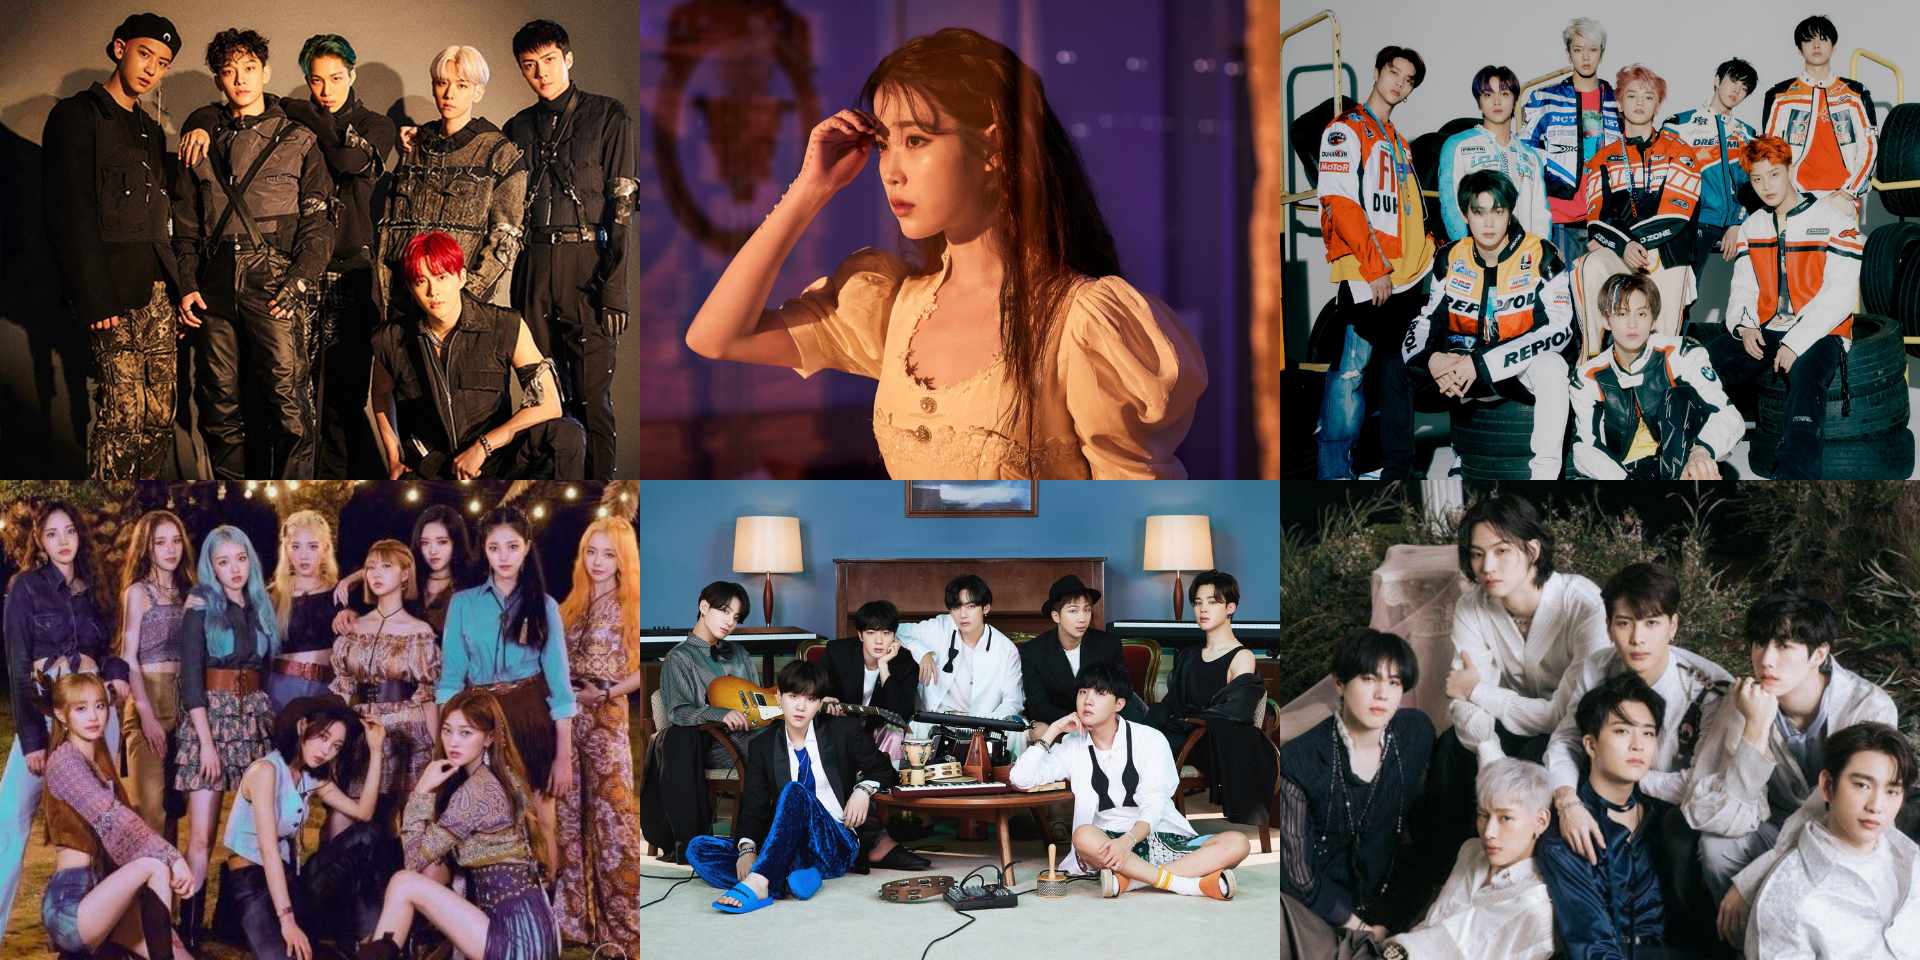 Here are the winners of the 35th Golden Disc Awards - BTS, EXO, GOT7, IU, LOONA, NCT 127, and more